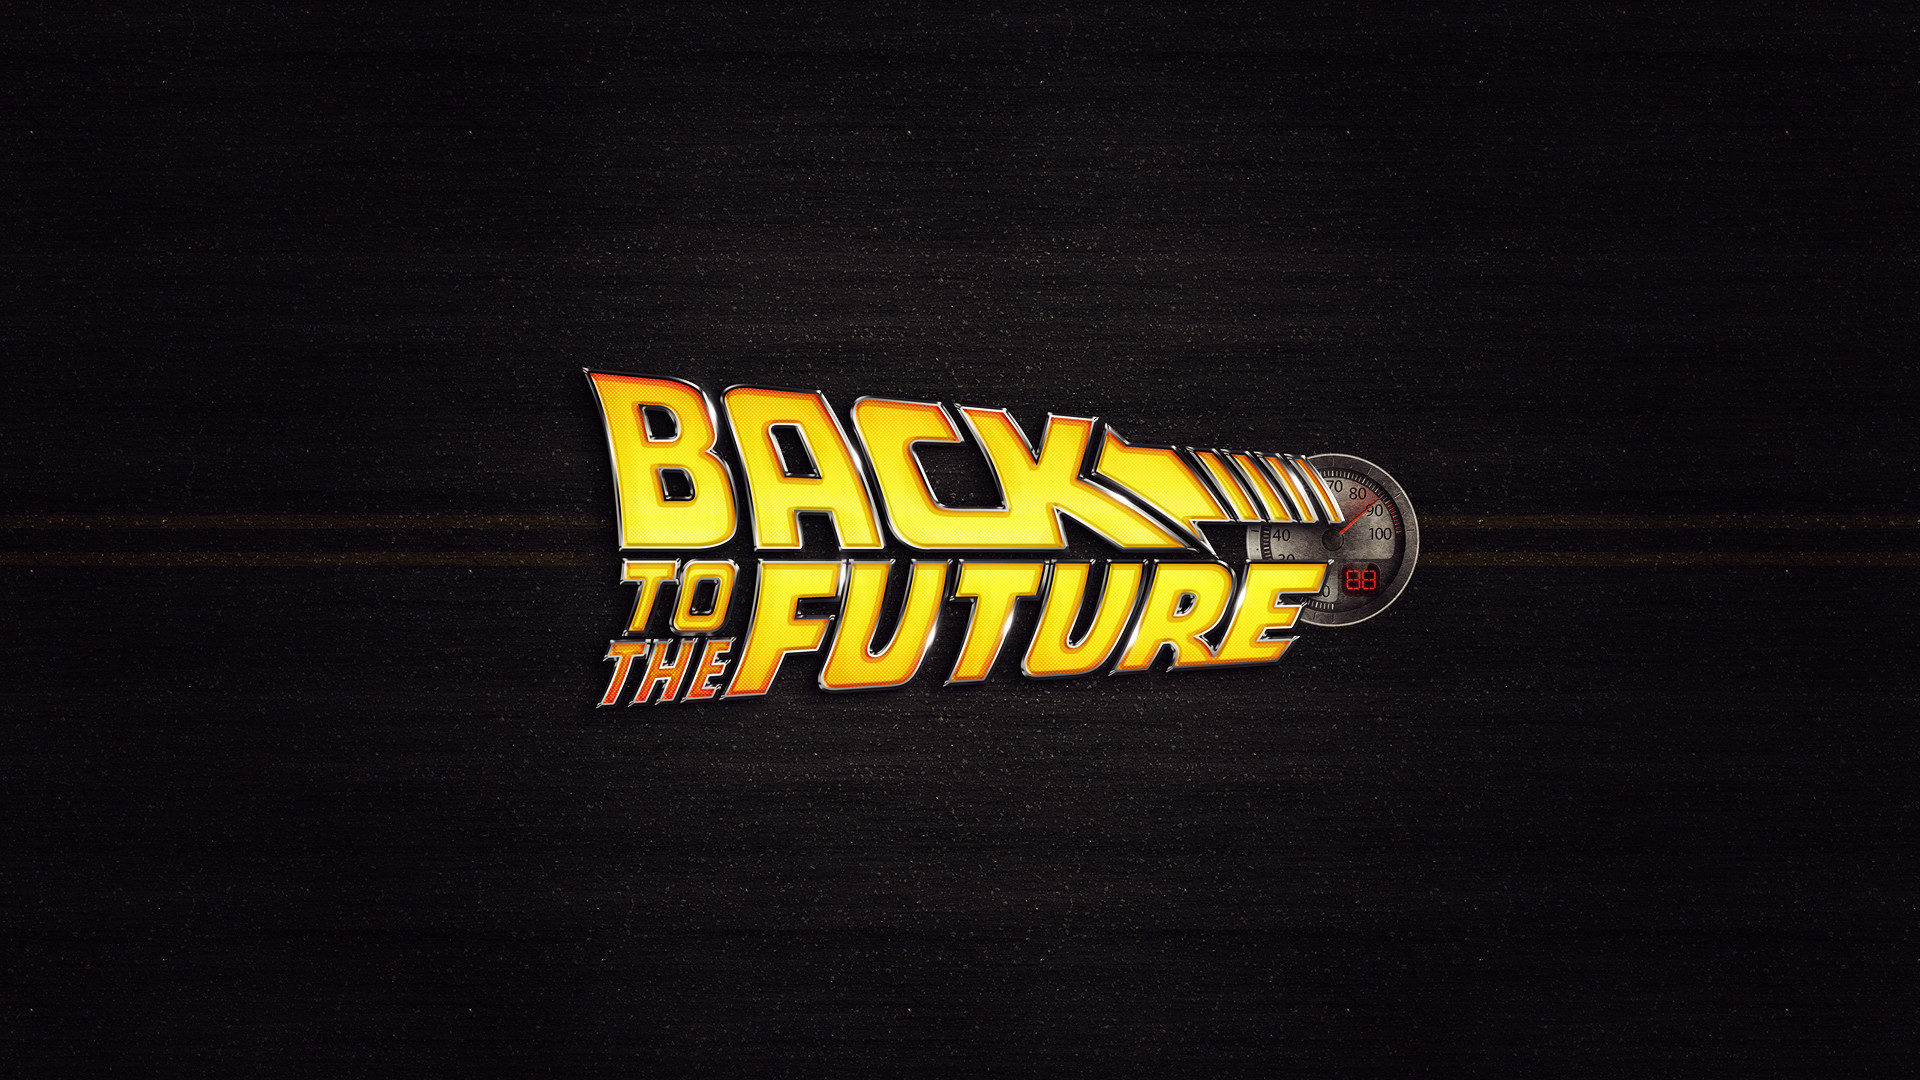 Res: 1920x1080, Back To The Future Movie Logo Desktop Wallpaper Uploaded by DesktopWalls